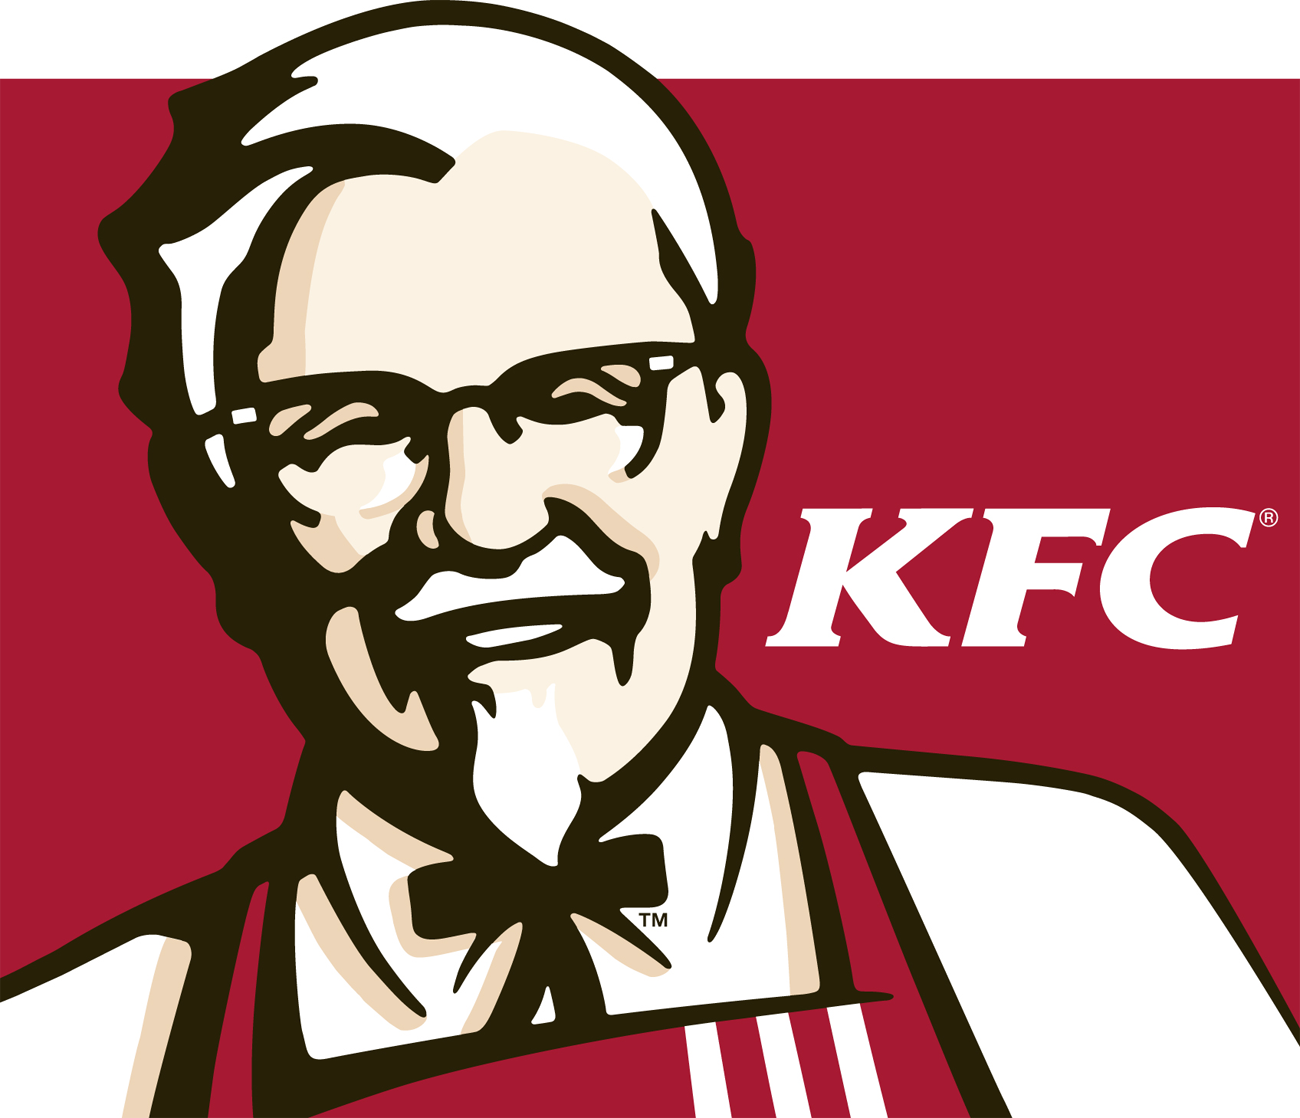 kfc logo kfc symbol meaning history and evolution